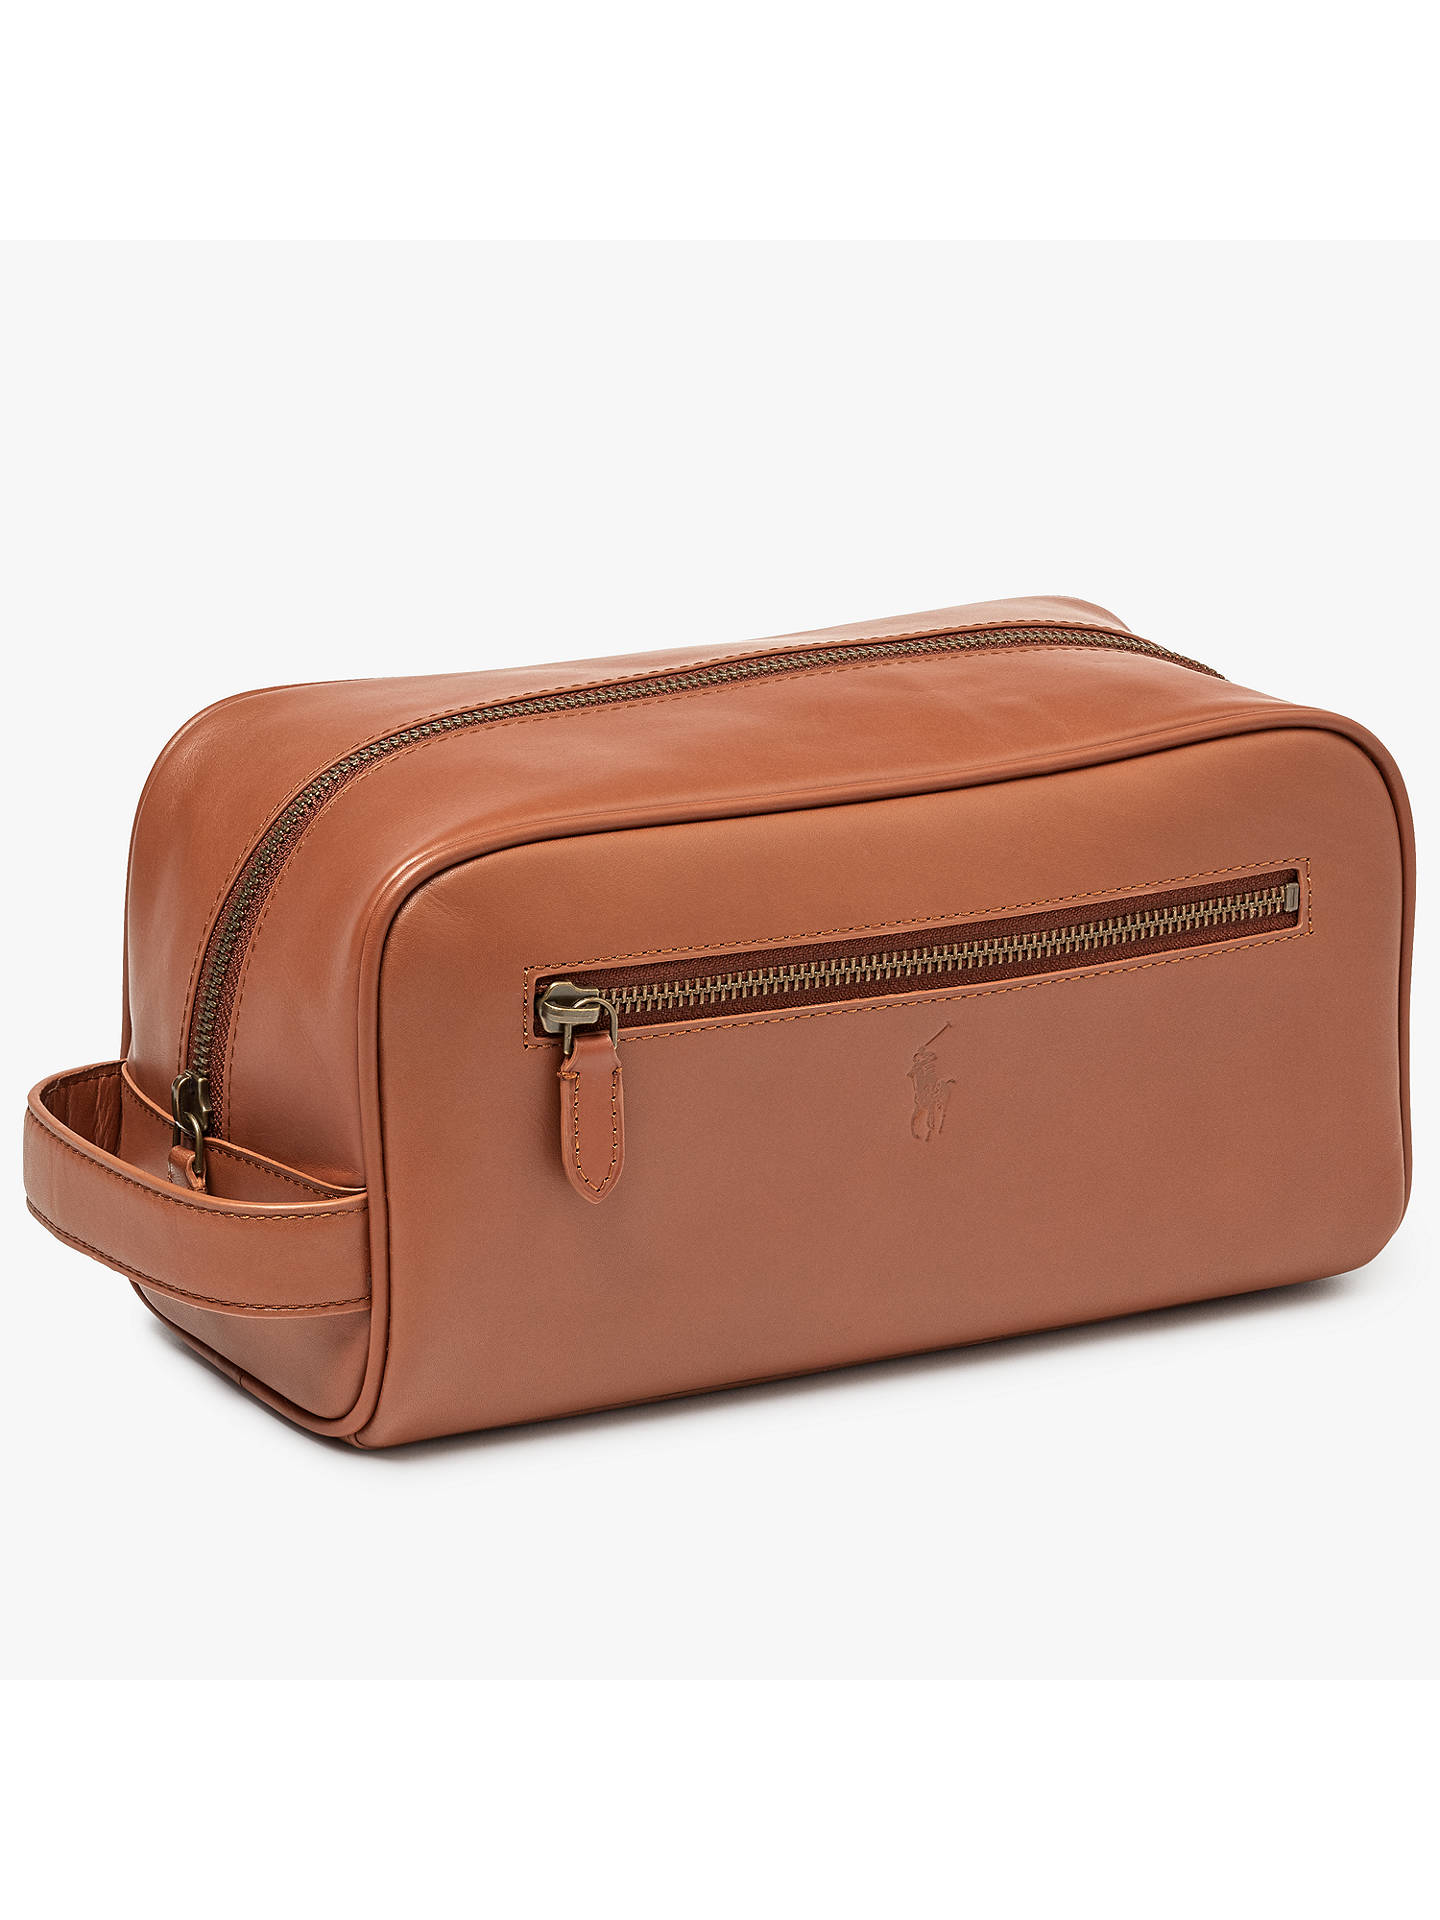 cad0c2a61b Buy Polo Ralph Lauren Leather Shave Kit Wash Bag